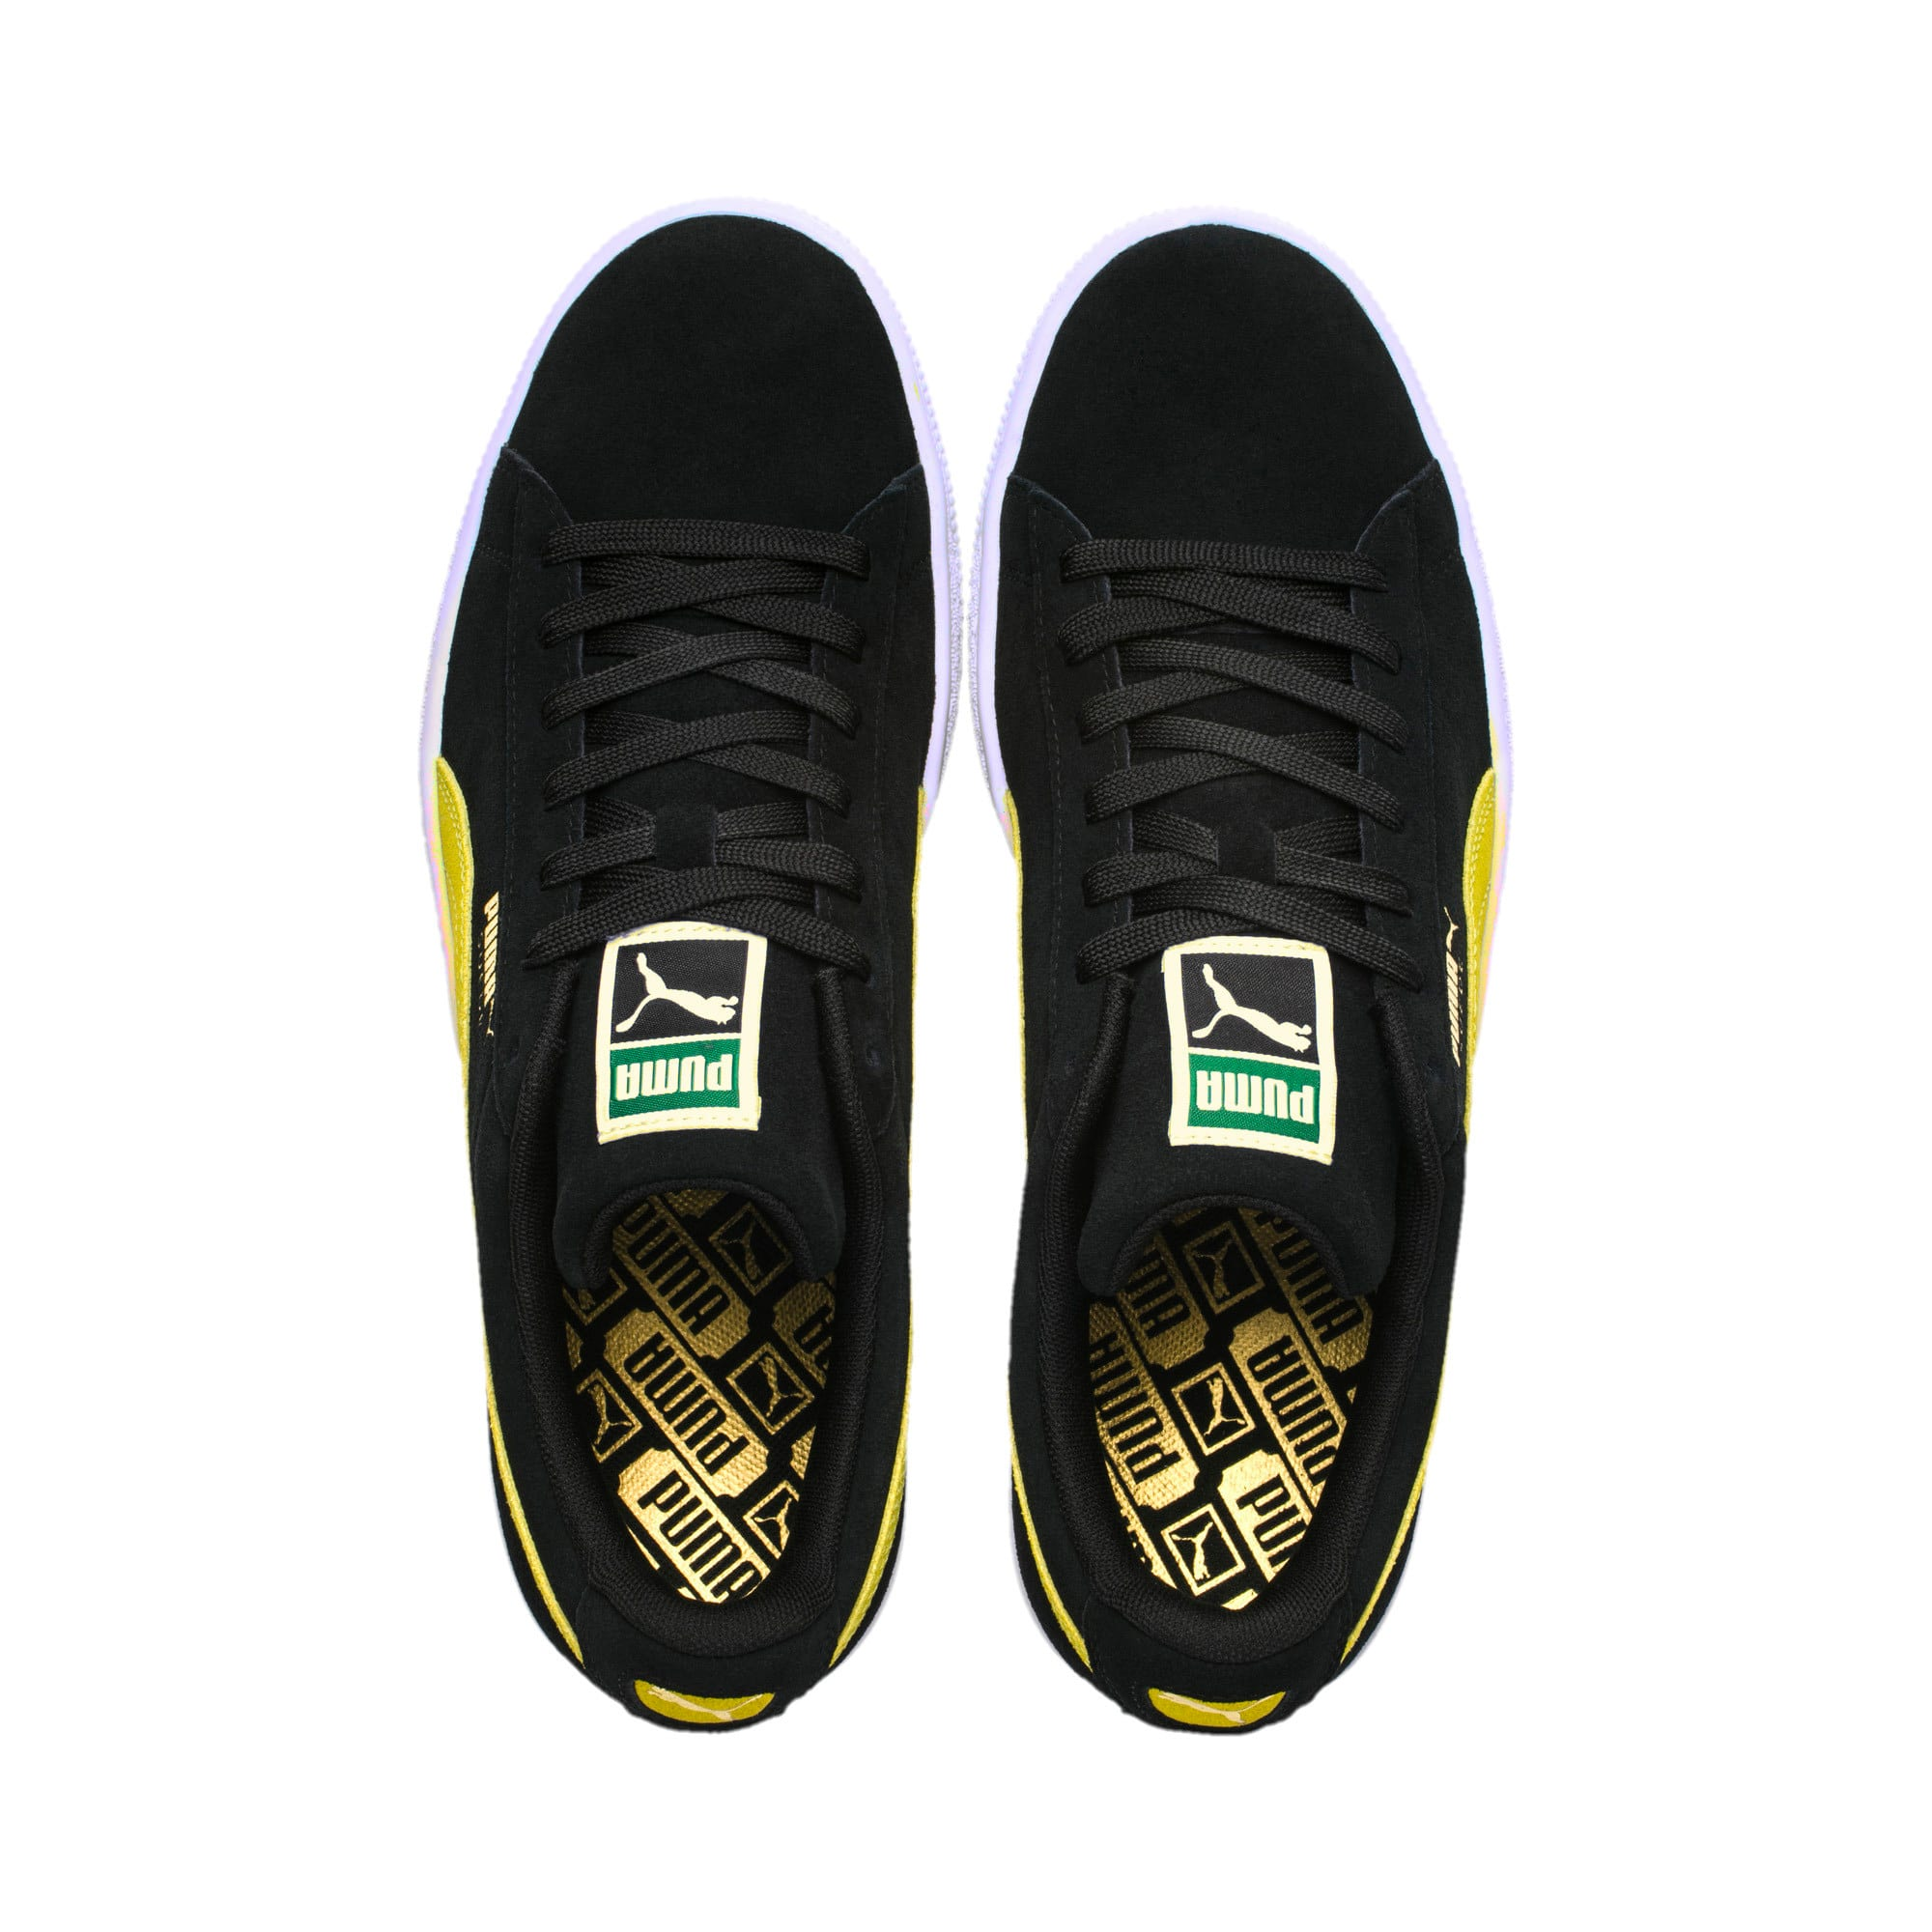 Thumbnail 6 of Suede Classic Trainers, Puma Black-Blazing Yellow, medium